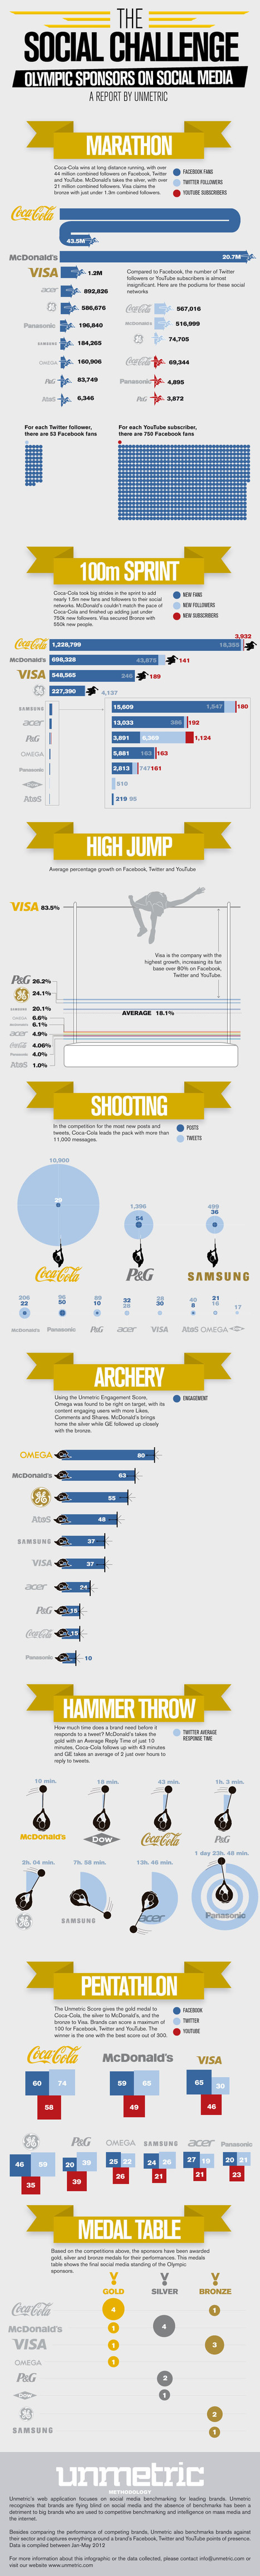 Olympic Sponsors Go For Gold Online [INFOGRAPHIC] | INFOGRAPHICS | Scoop.it